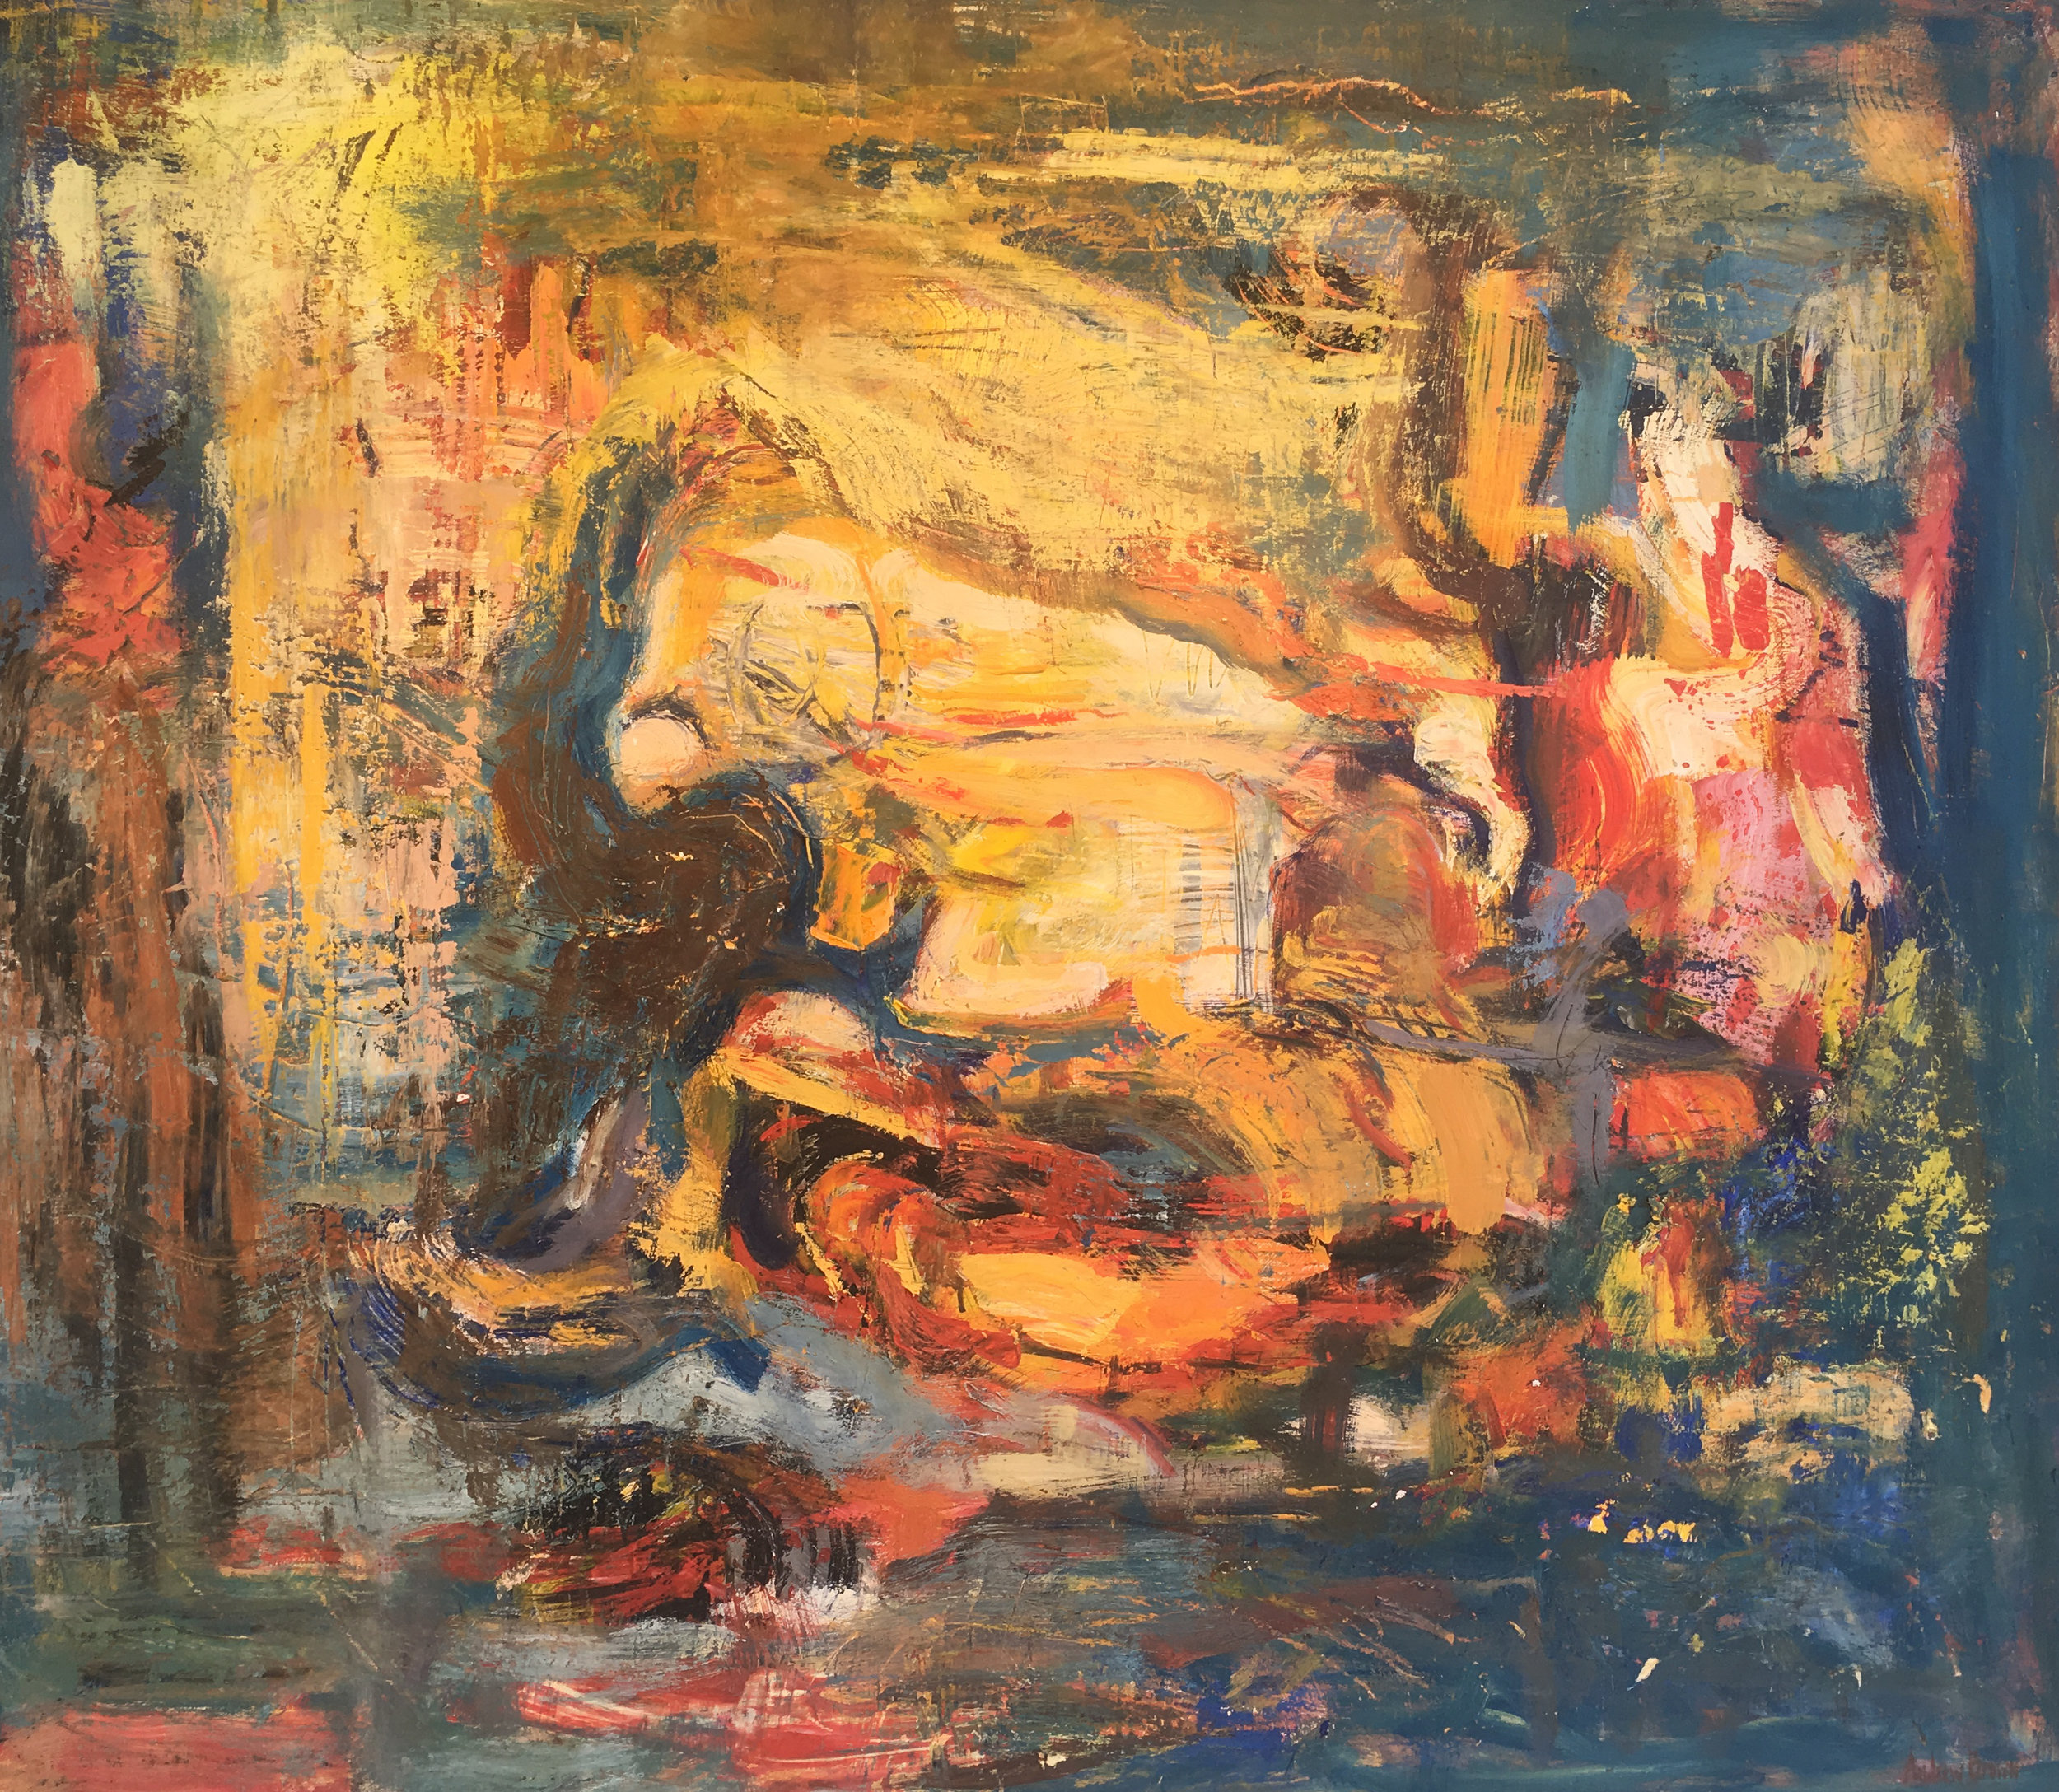 Andrew Brown   - http://www.breckenridgegallery.comWorking both with oil and acrylic, Andrew Brown enjoys pushing the limits of what can be accomplished with mediums, creating depth, texture, and authenticity in his pieces both abstract and representational. After studying under his father, acclaimed artist Gordon Brown, for a number of years, Andrew has found his own distinct style.Andrew is featured at Breckenridge Gallery on Main Street, Breckenridge